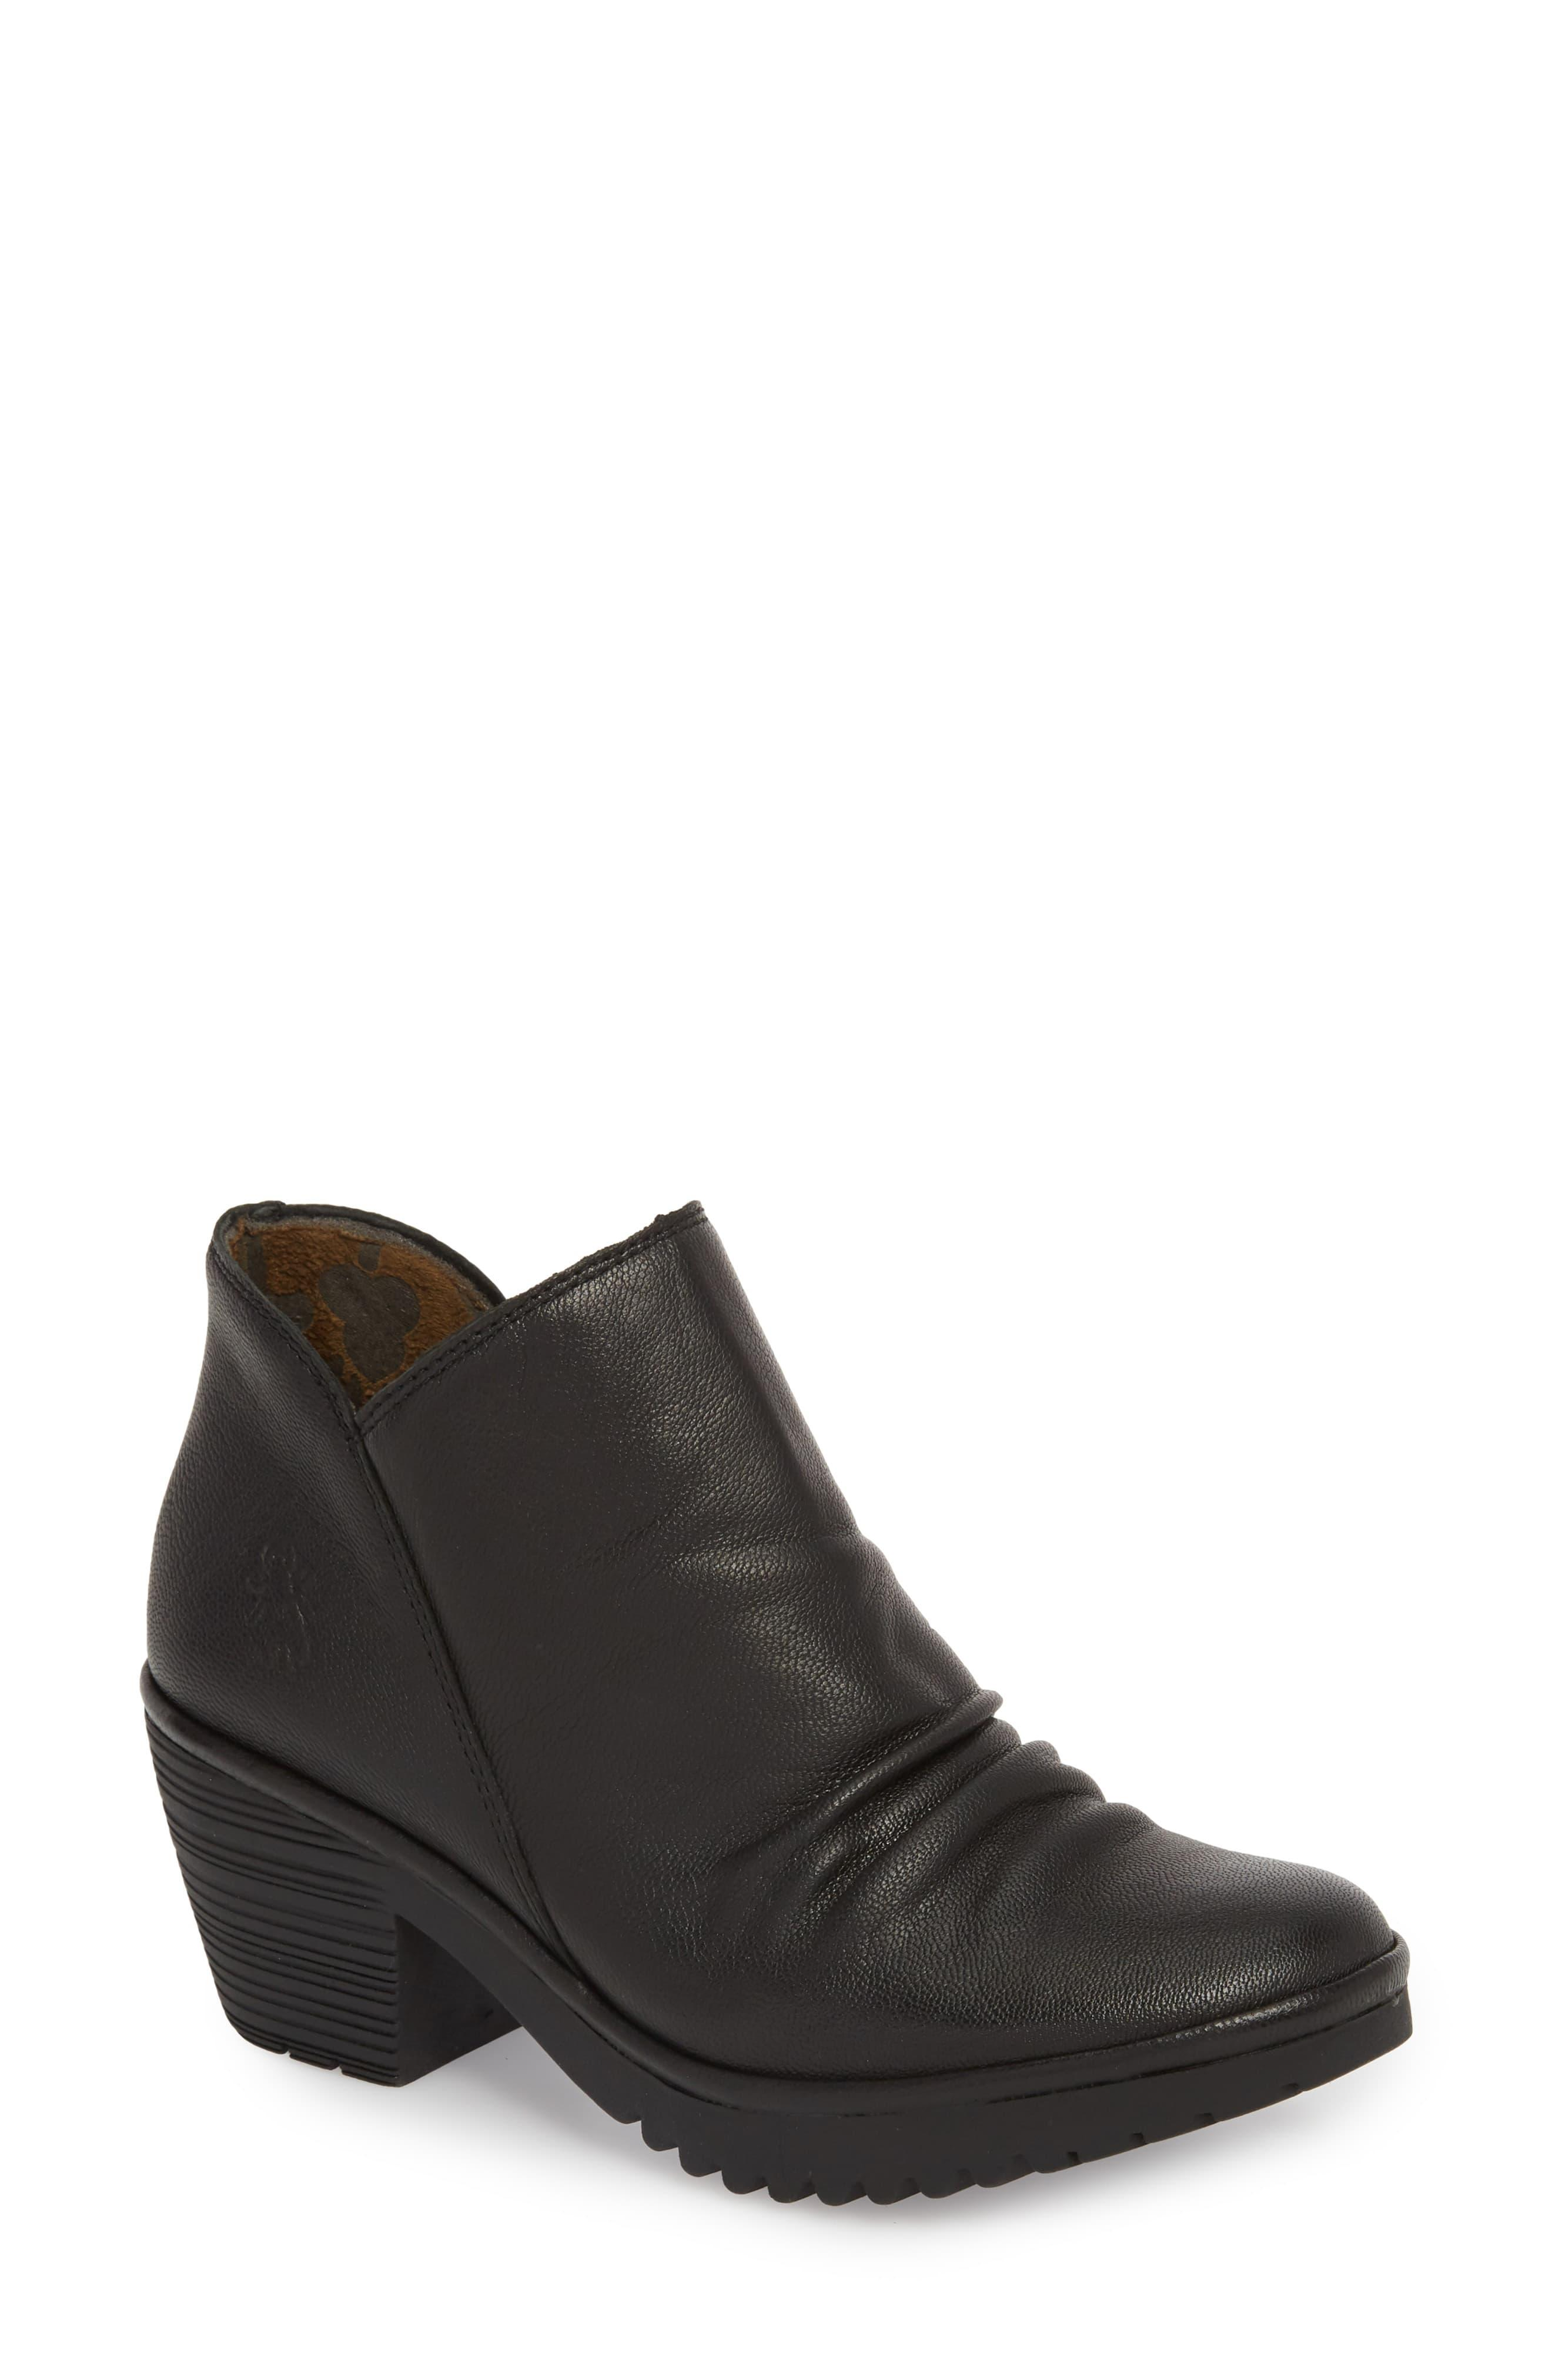 65cea734f38 Fly London Wezo Bootie in Black - Save 35% - Lyst